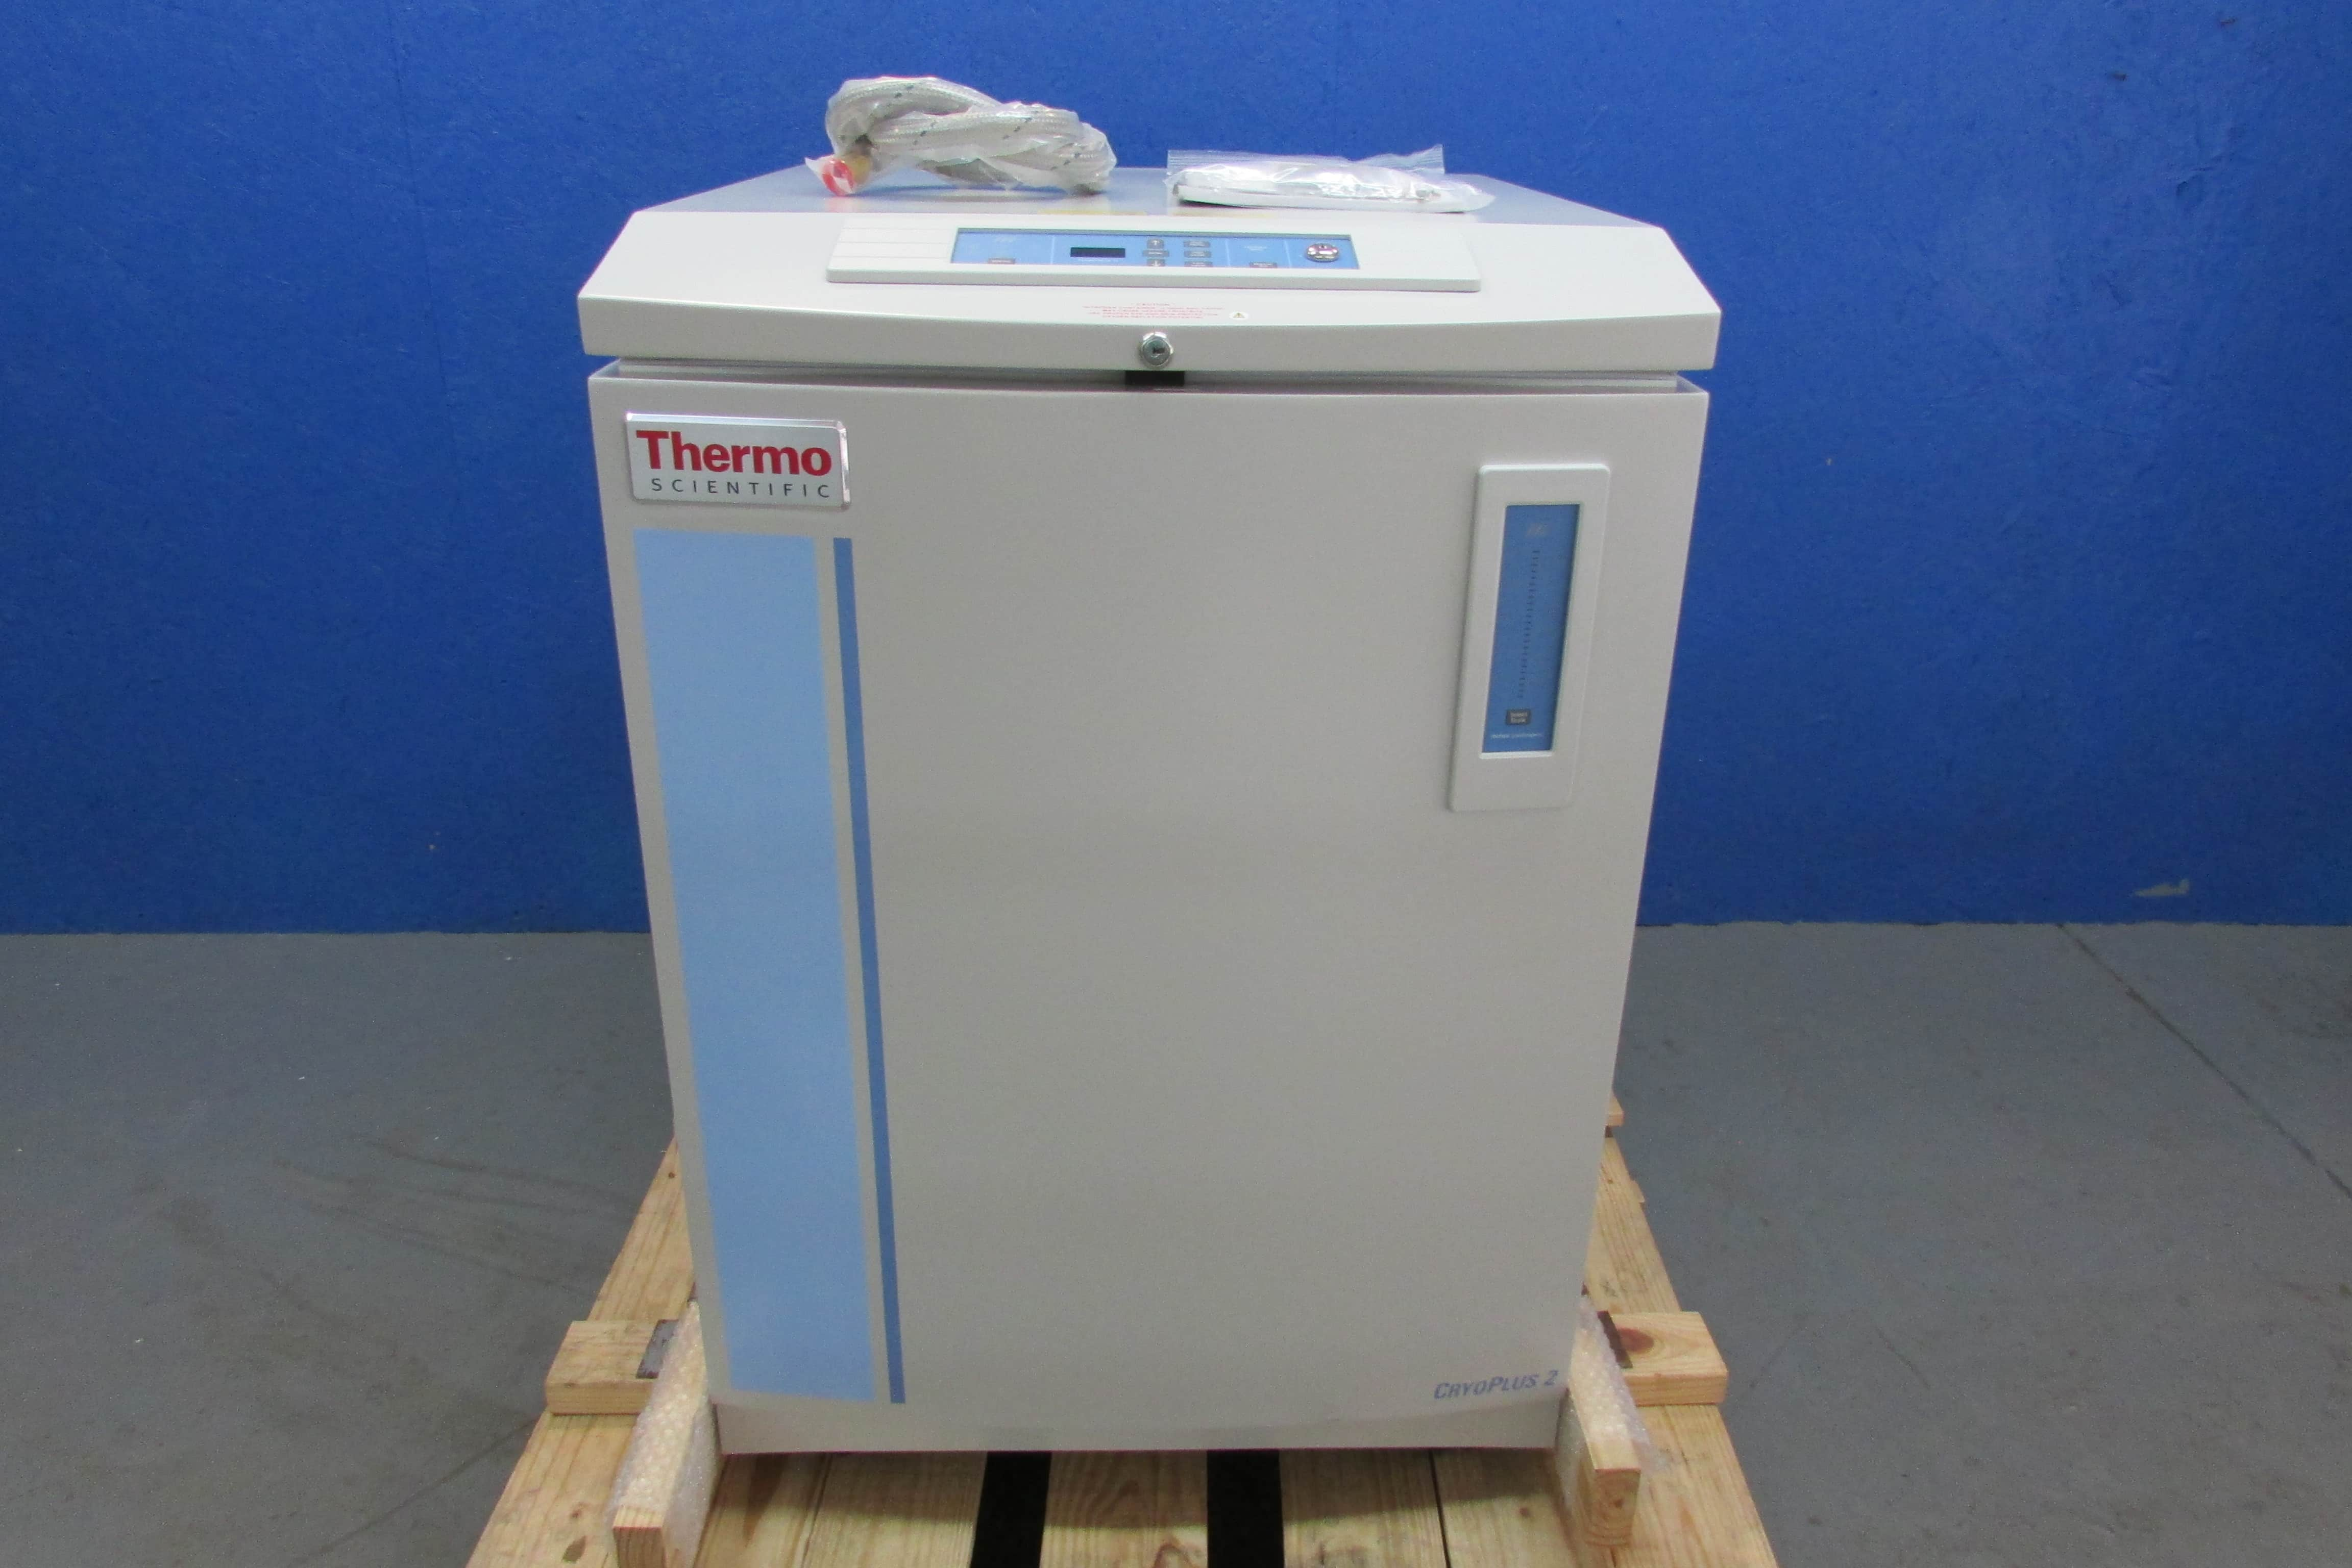 Thermo Scientific 7402 CryoPlus 2